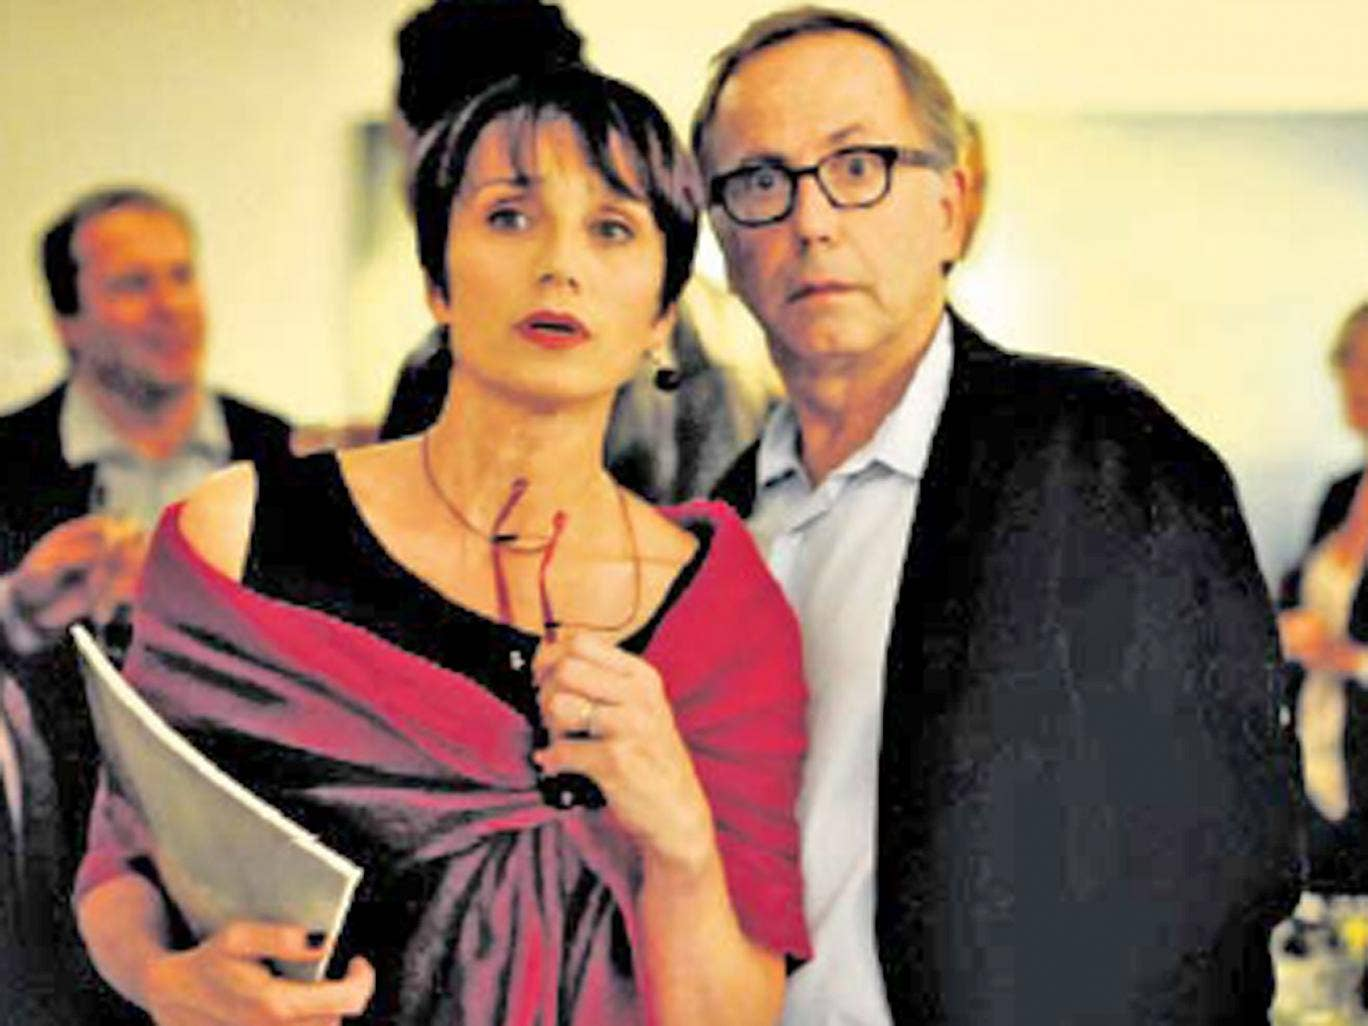 Kristin Scott Thomas and Fabrice Luchini become party to a guilty secret in In The House